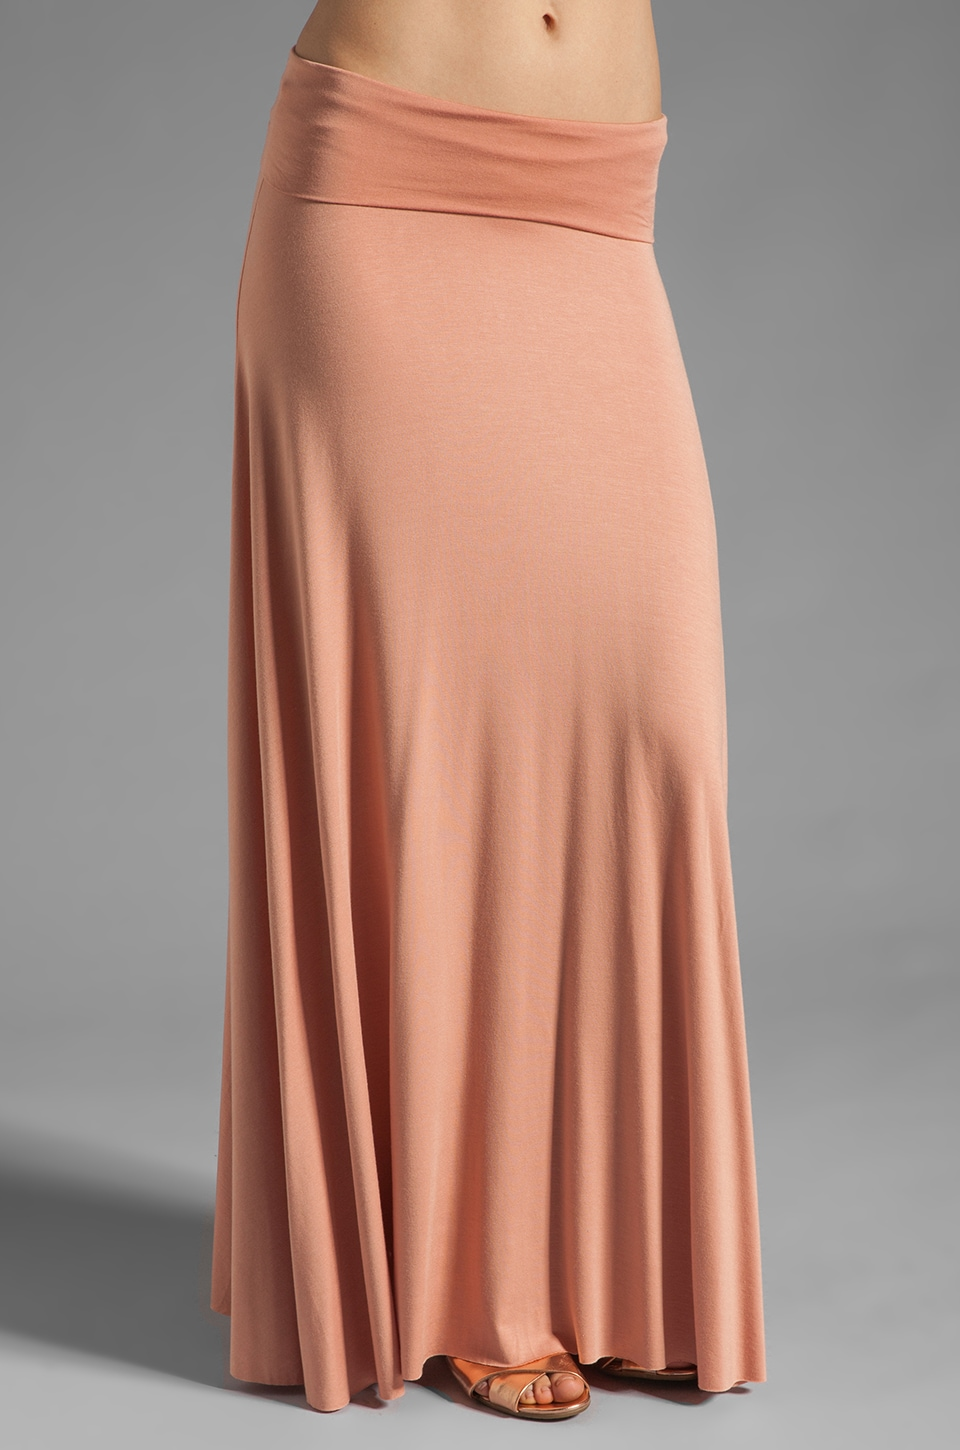 Rachel Pally Long Full Skirt in Clay